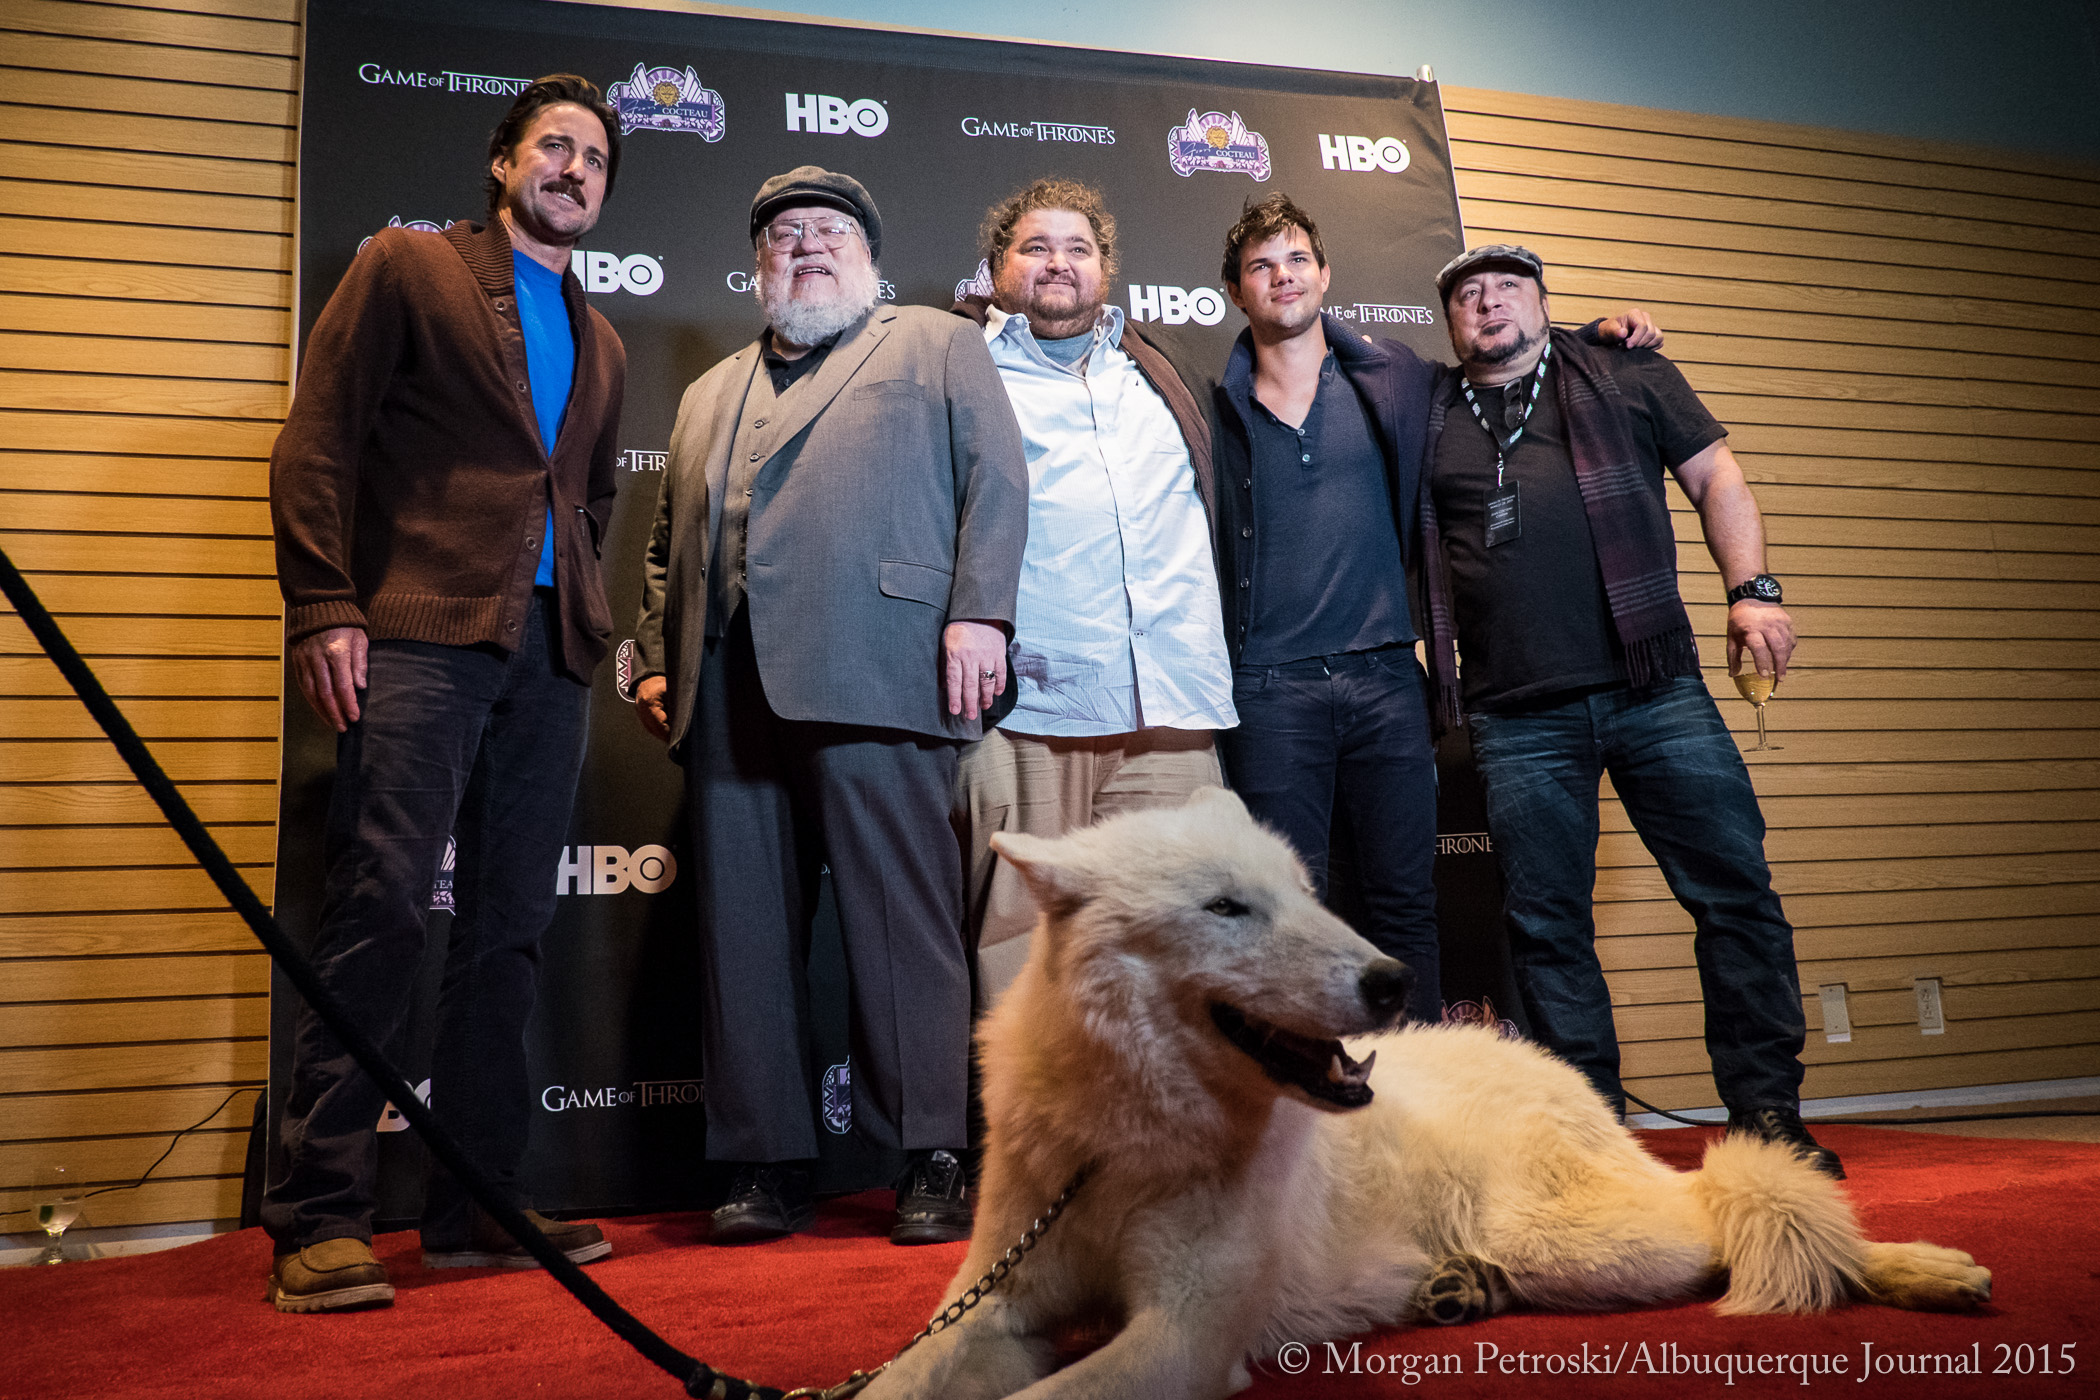 The Ridiculous Six at Game of Thrones Premiere